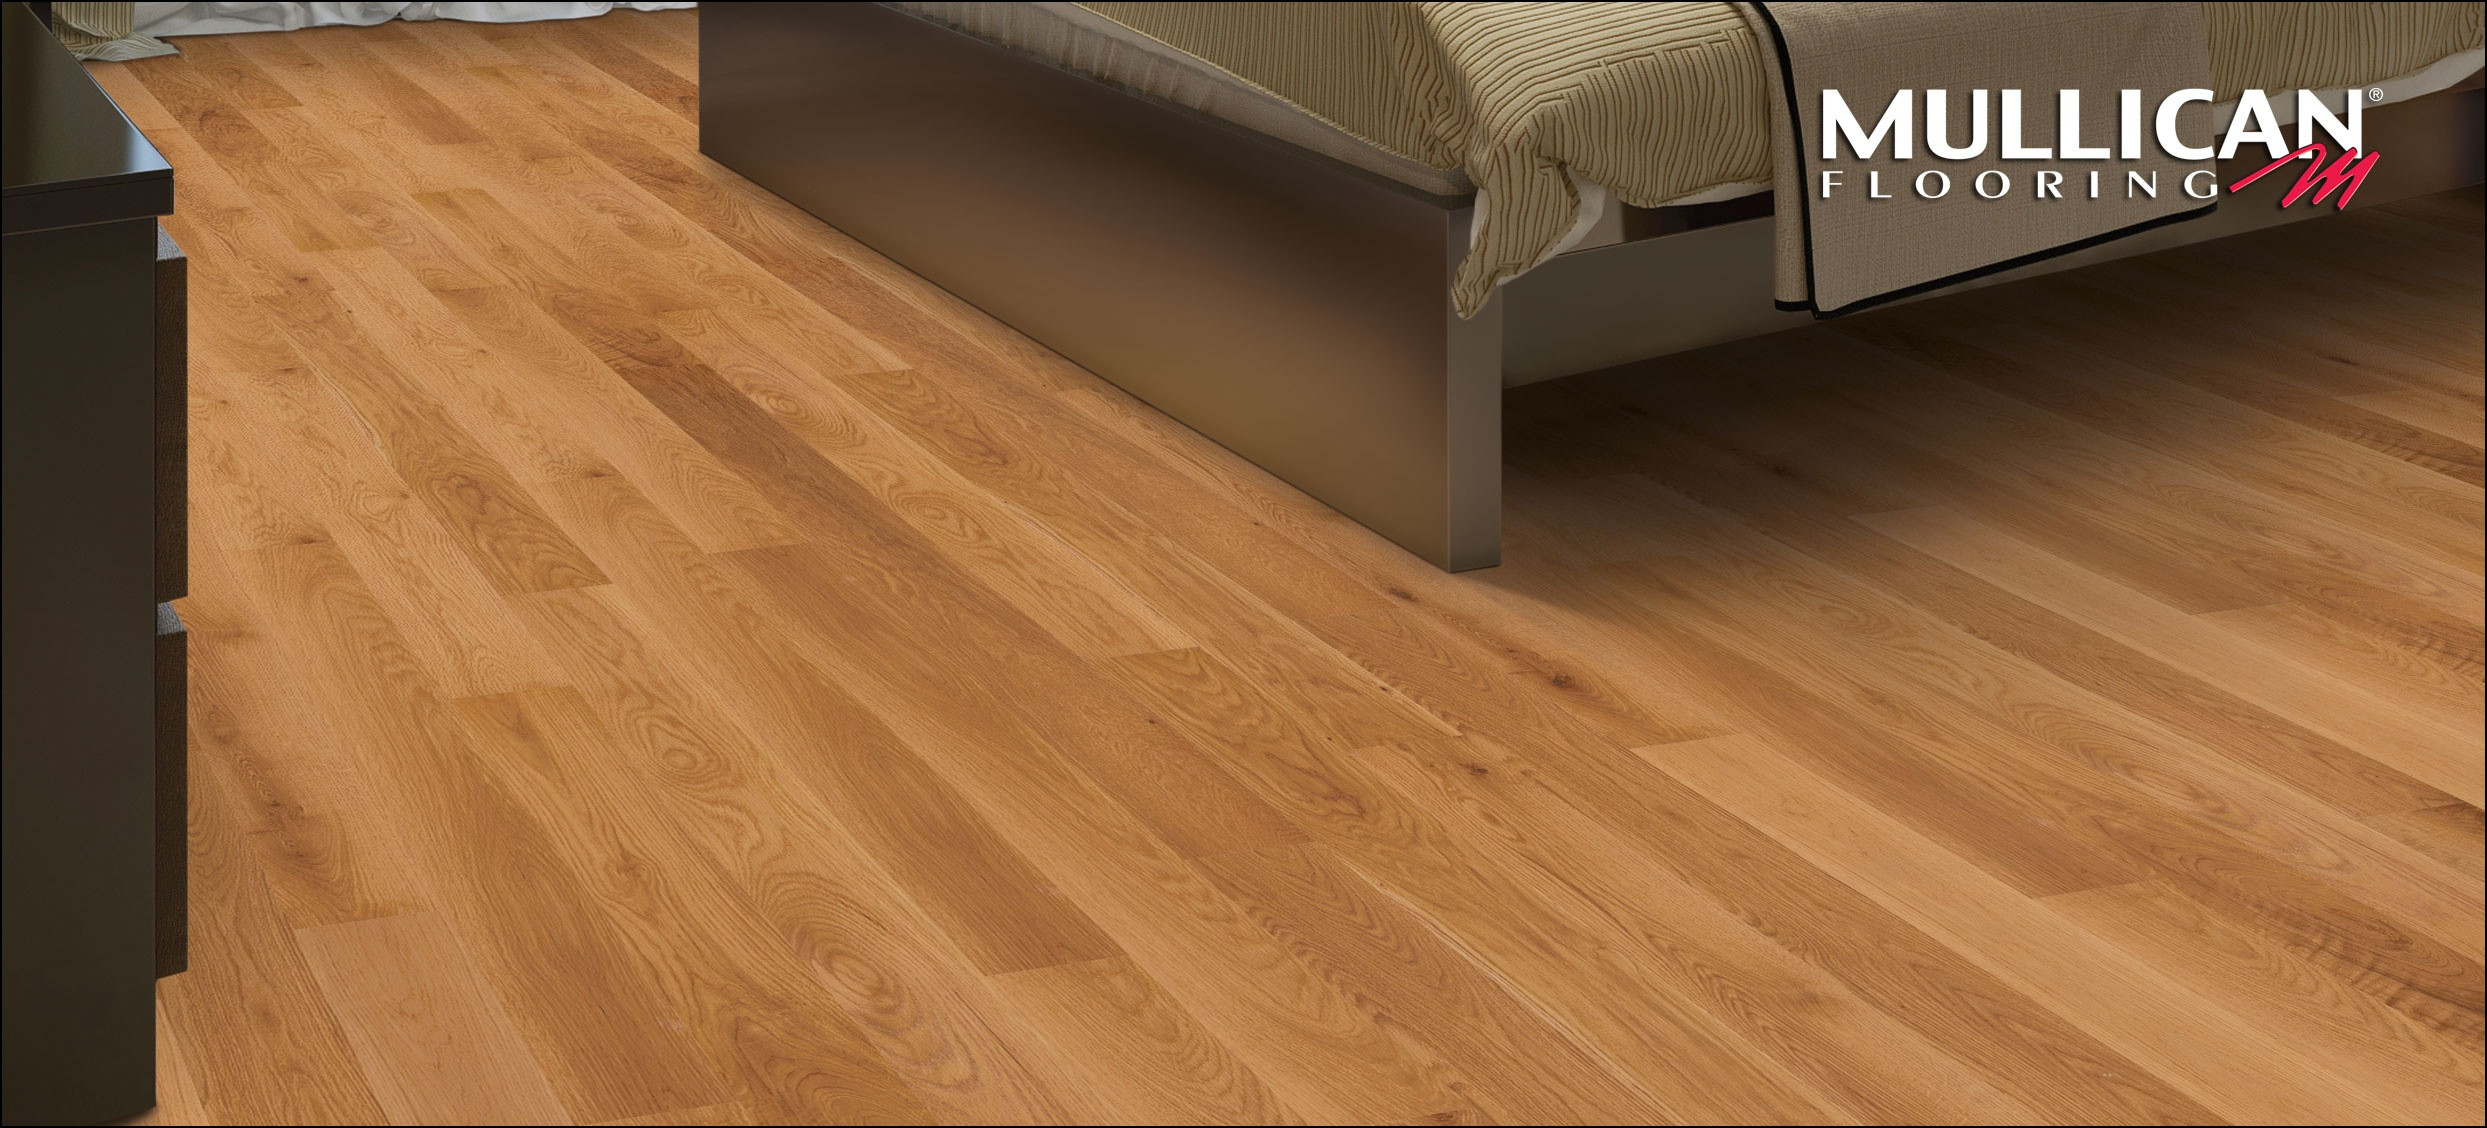 Hl Hardwood Floors Of Hardwood Flooring Suppliers France Flooring Ideas Regarding Hardwood Flooring Installation San Diego Collection Mullican Flooring Home Of Hardwood Flooring Installation San Diego